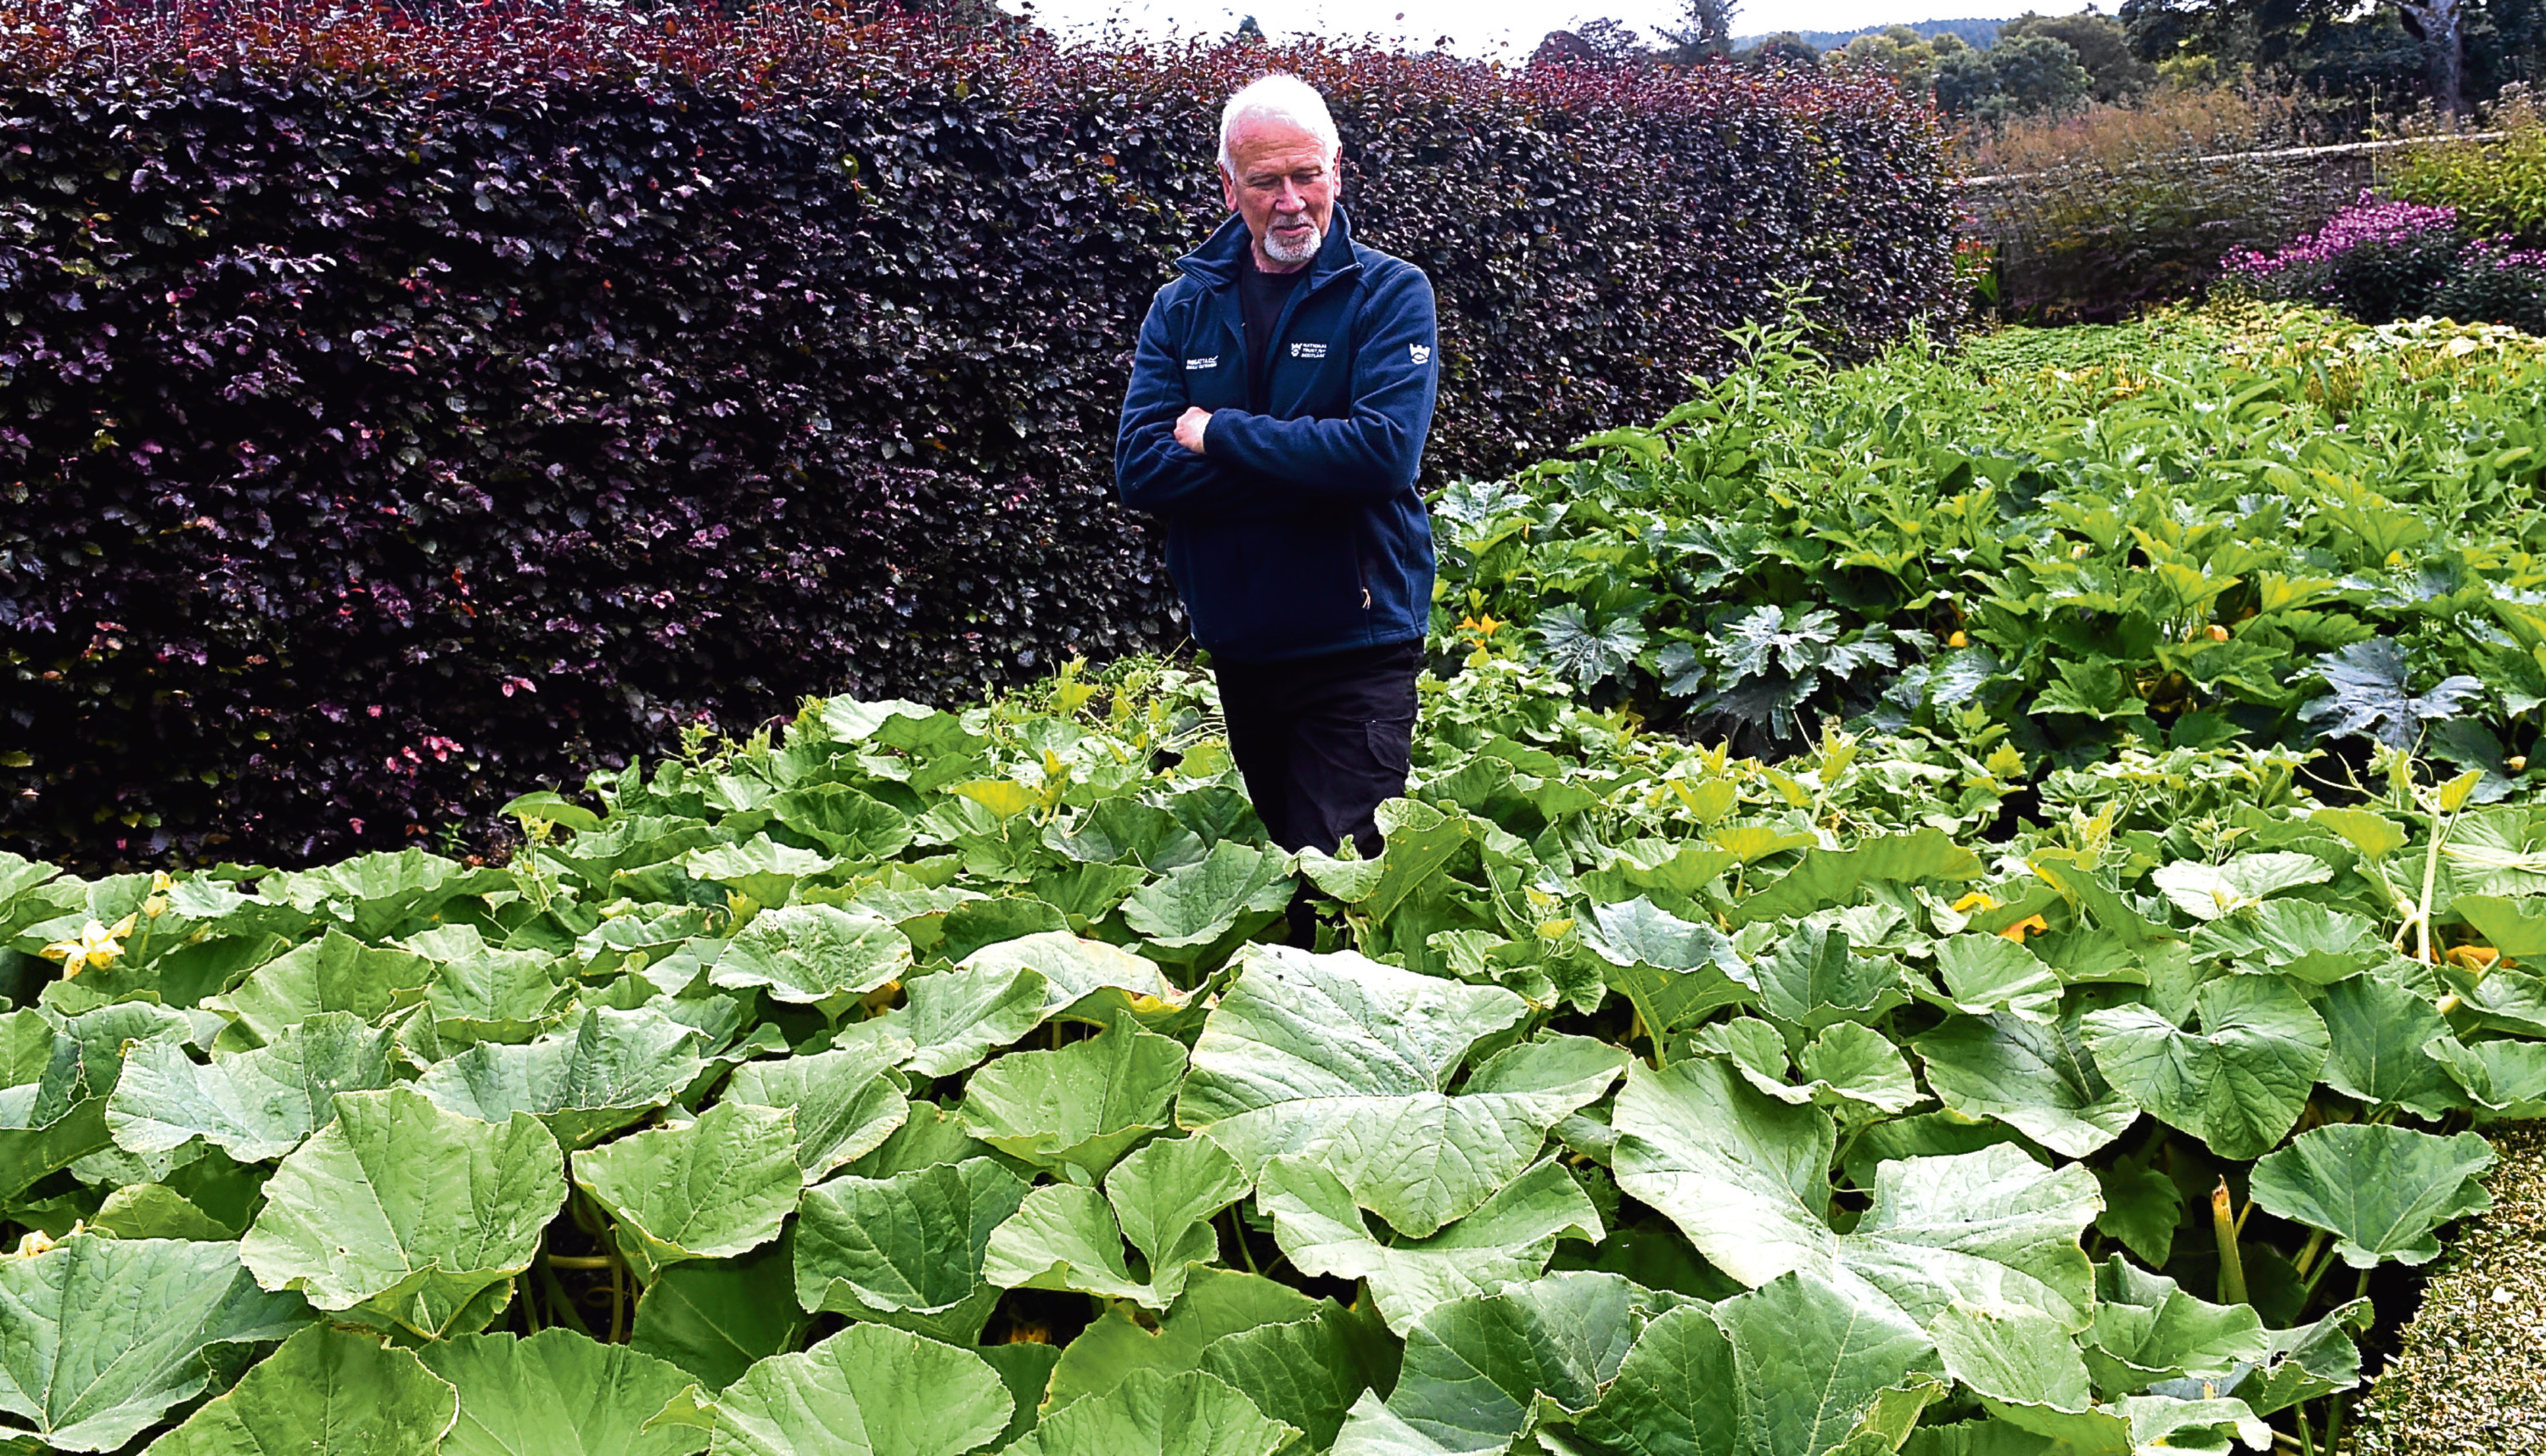 Castle Fraser has had pumpkins stolen which has meant an event has been cancelled. Pictured is Peter Randlo, Head gardener. 01/09/17 Picture by HEATHER FOWLIE